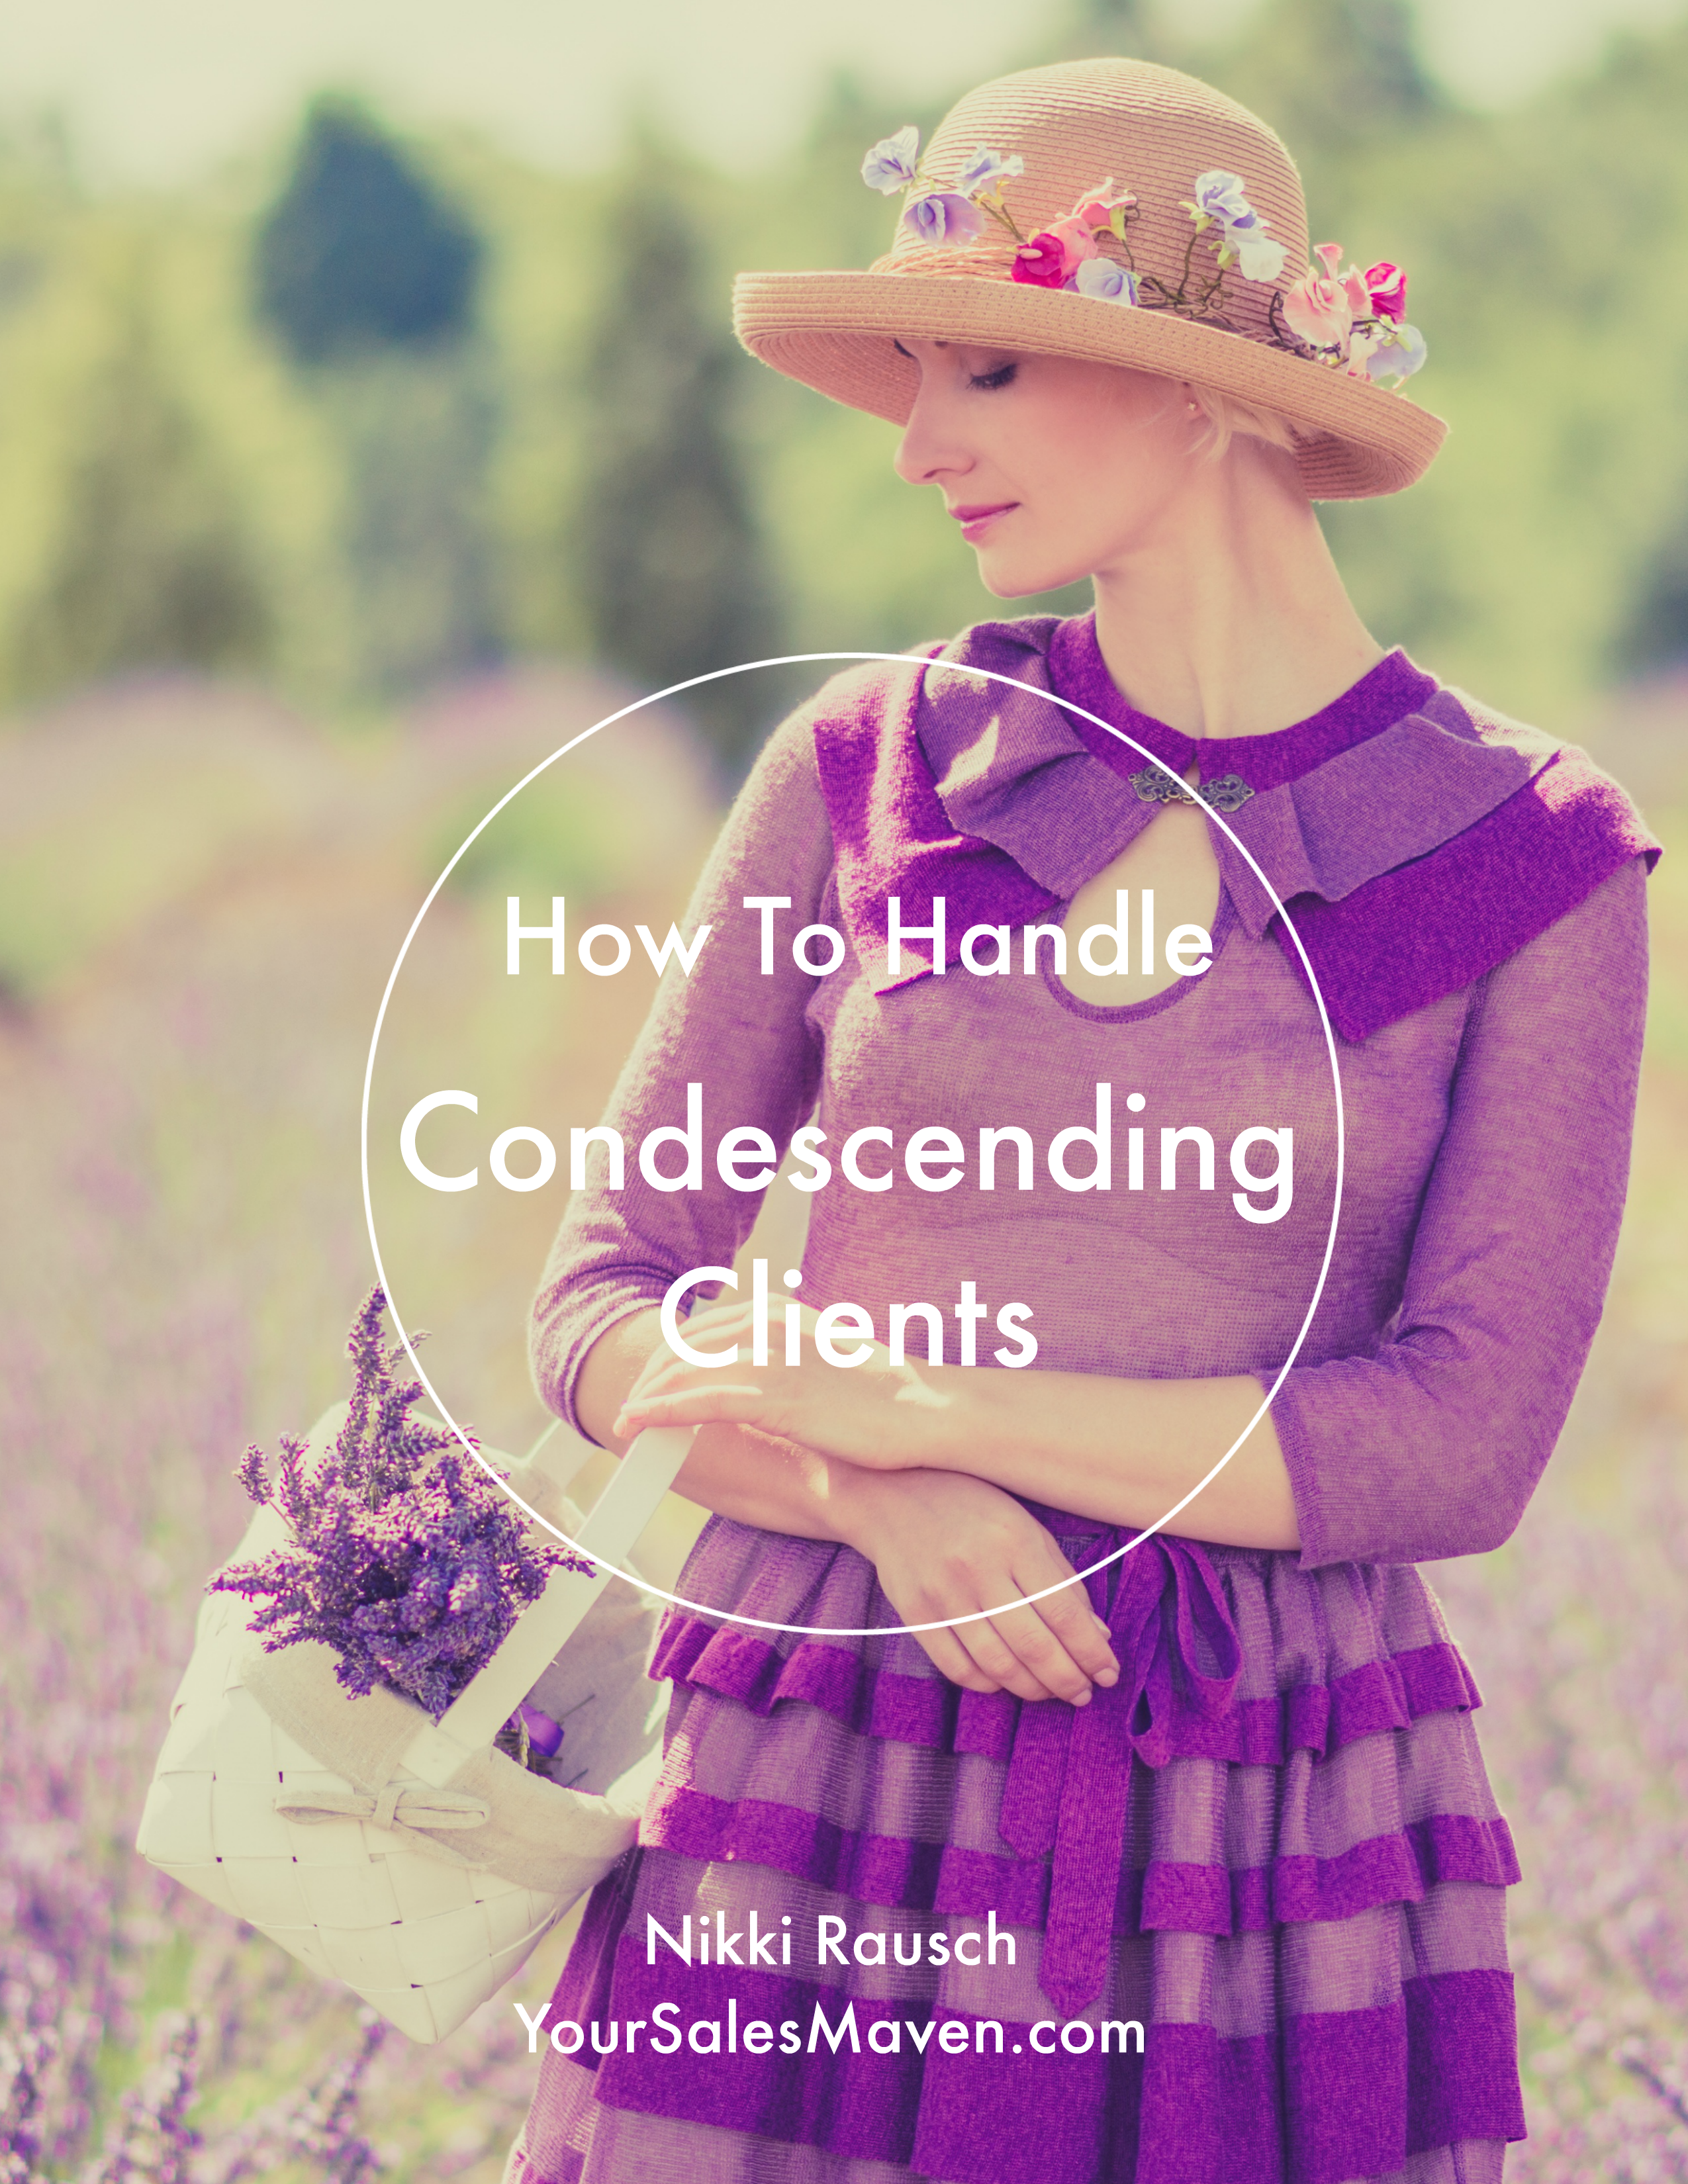 How To Handle Condescending Clients